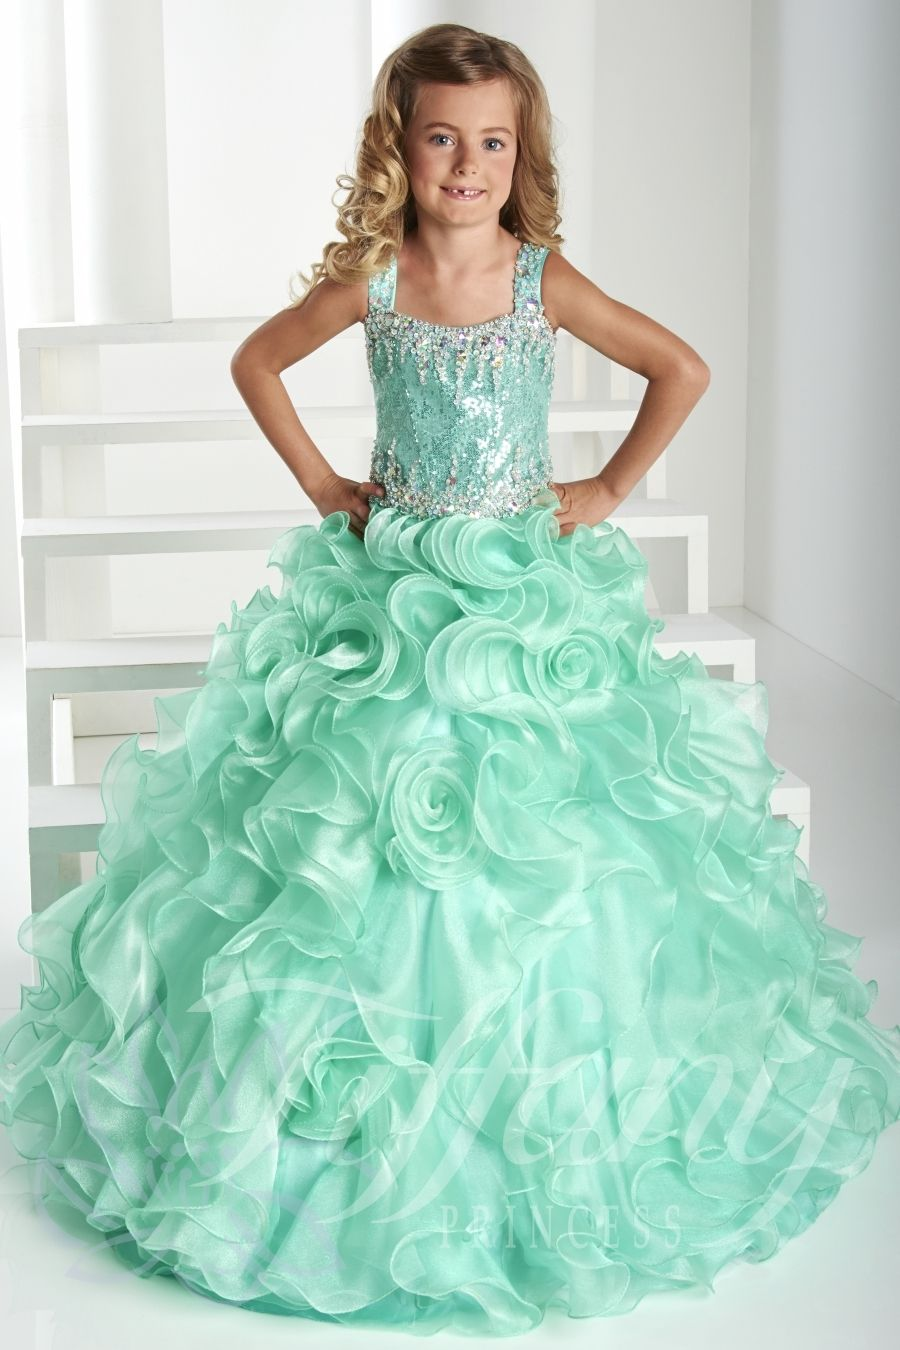 Tiffany Princess Little Girls Dress 13412 - Everything4pageants.com ...